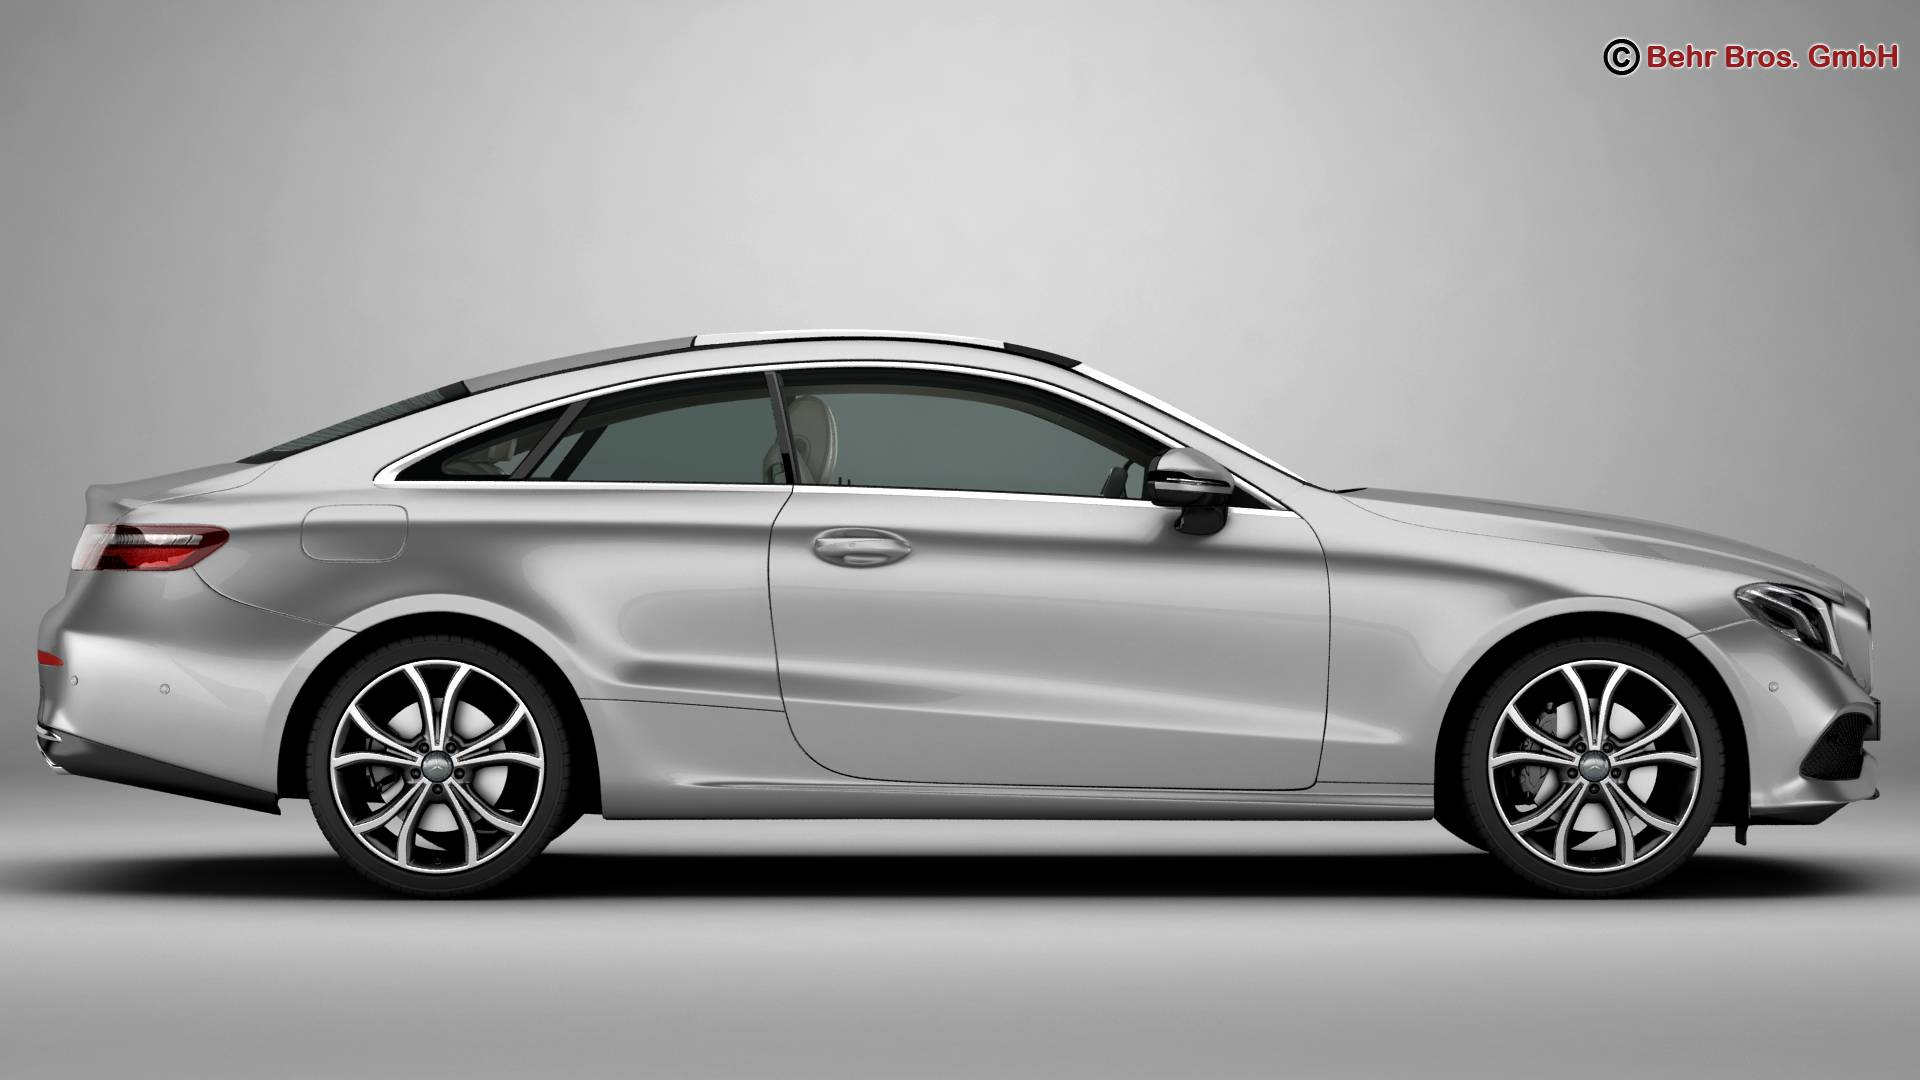 mercedes e class coupe 2017 3d model buy mercedes e class coupe 2017 3d model flatpyramid. Black Bedroom Furniture Sets. Home Design Ideas